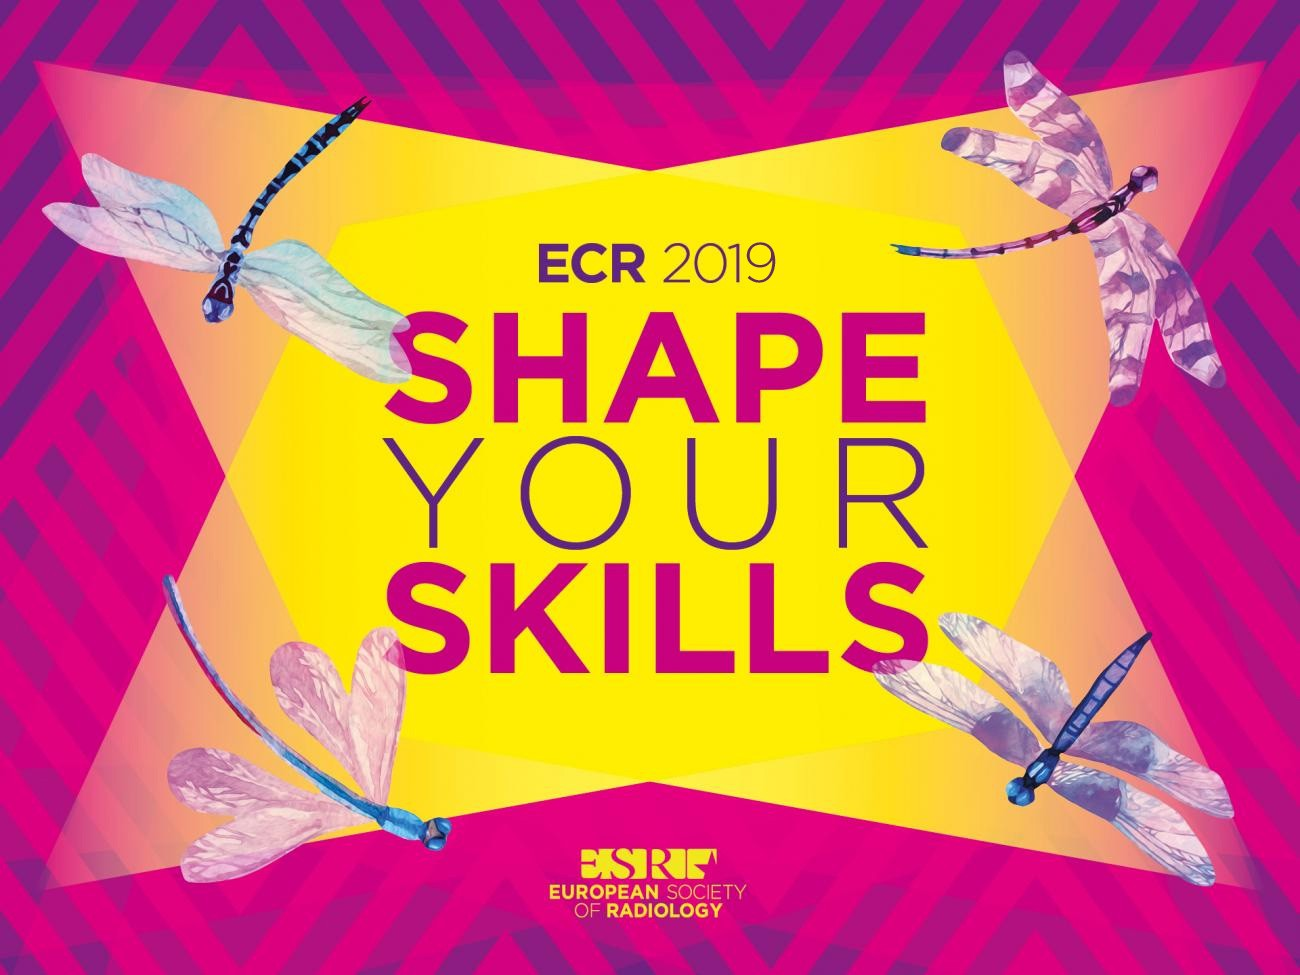 ECR 2019 Shape Your Skills